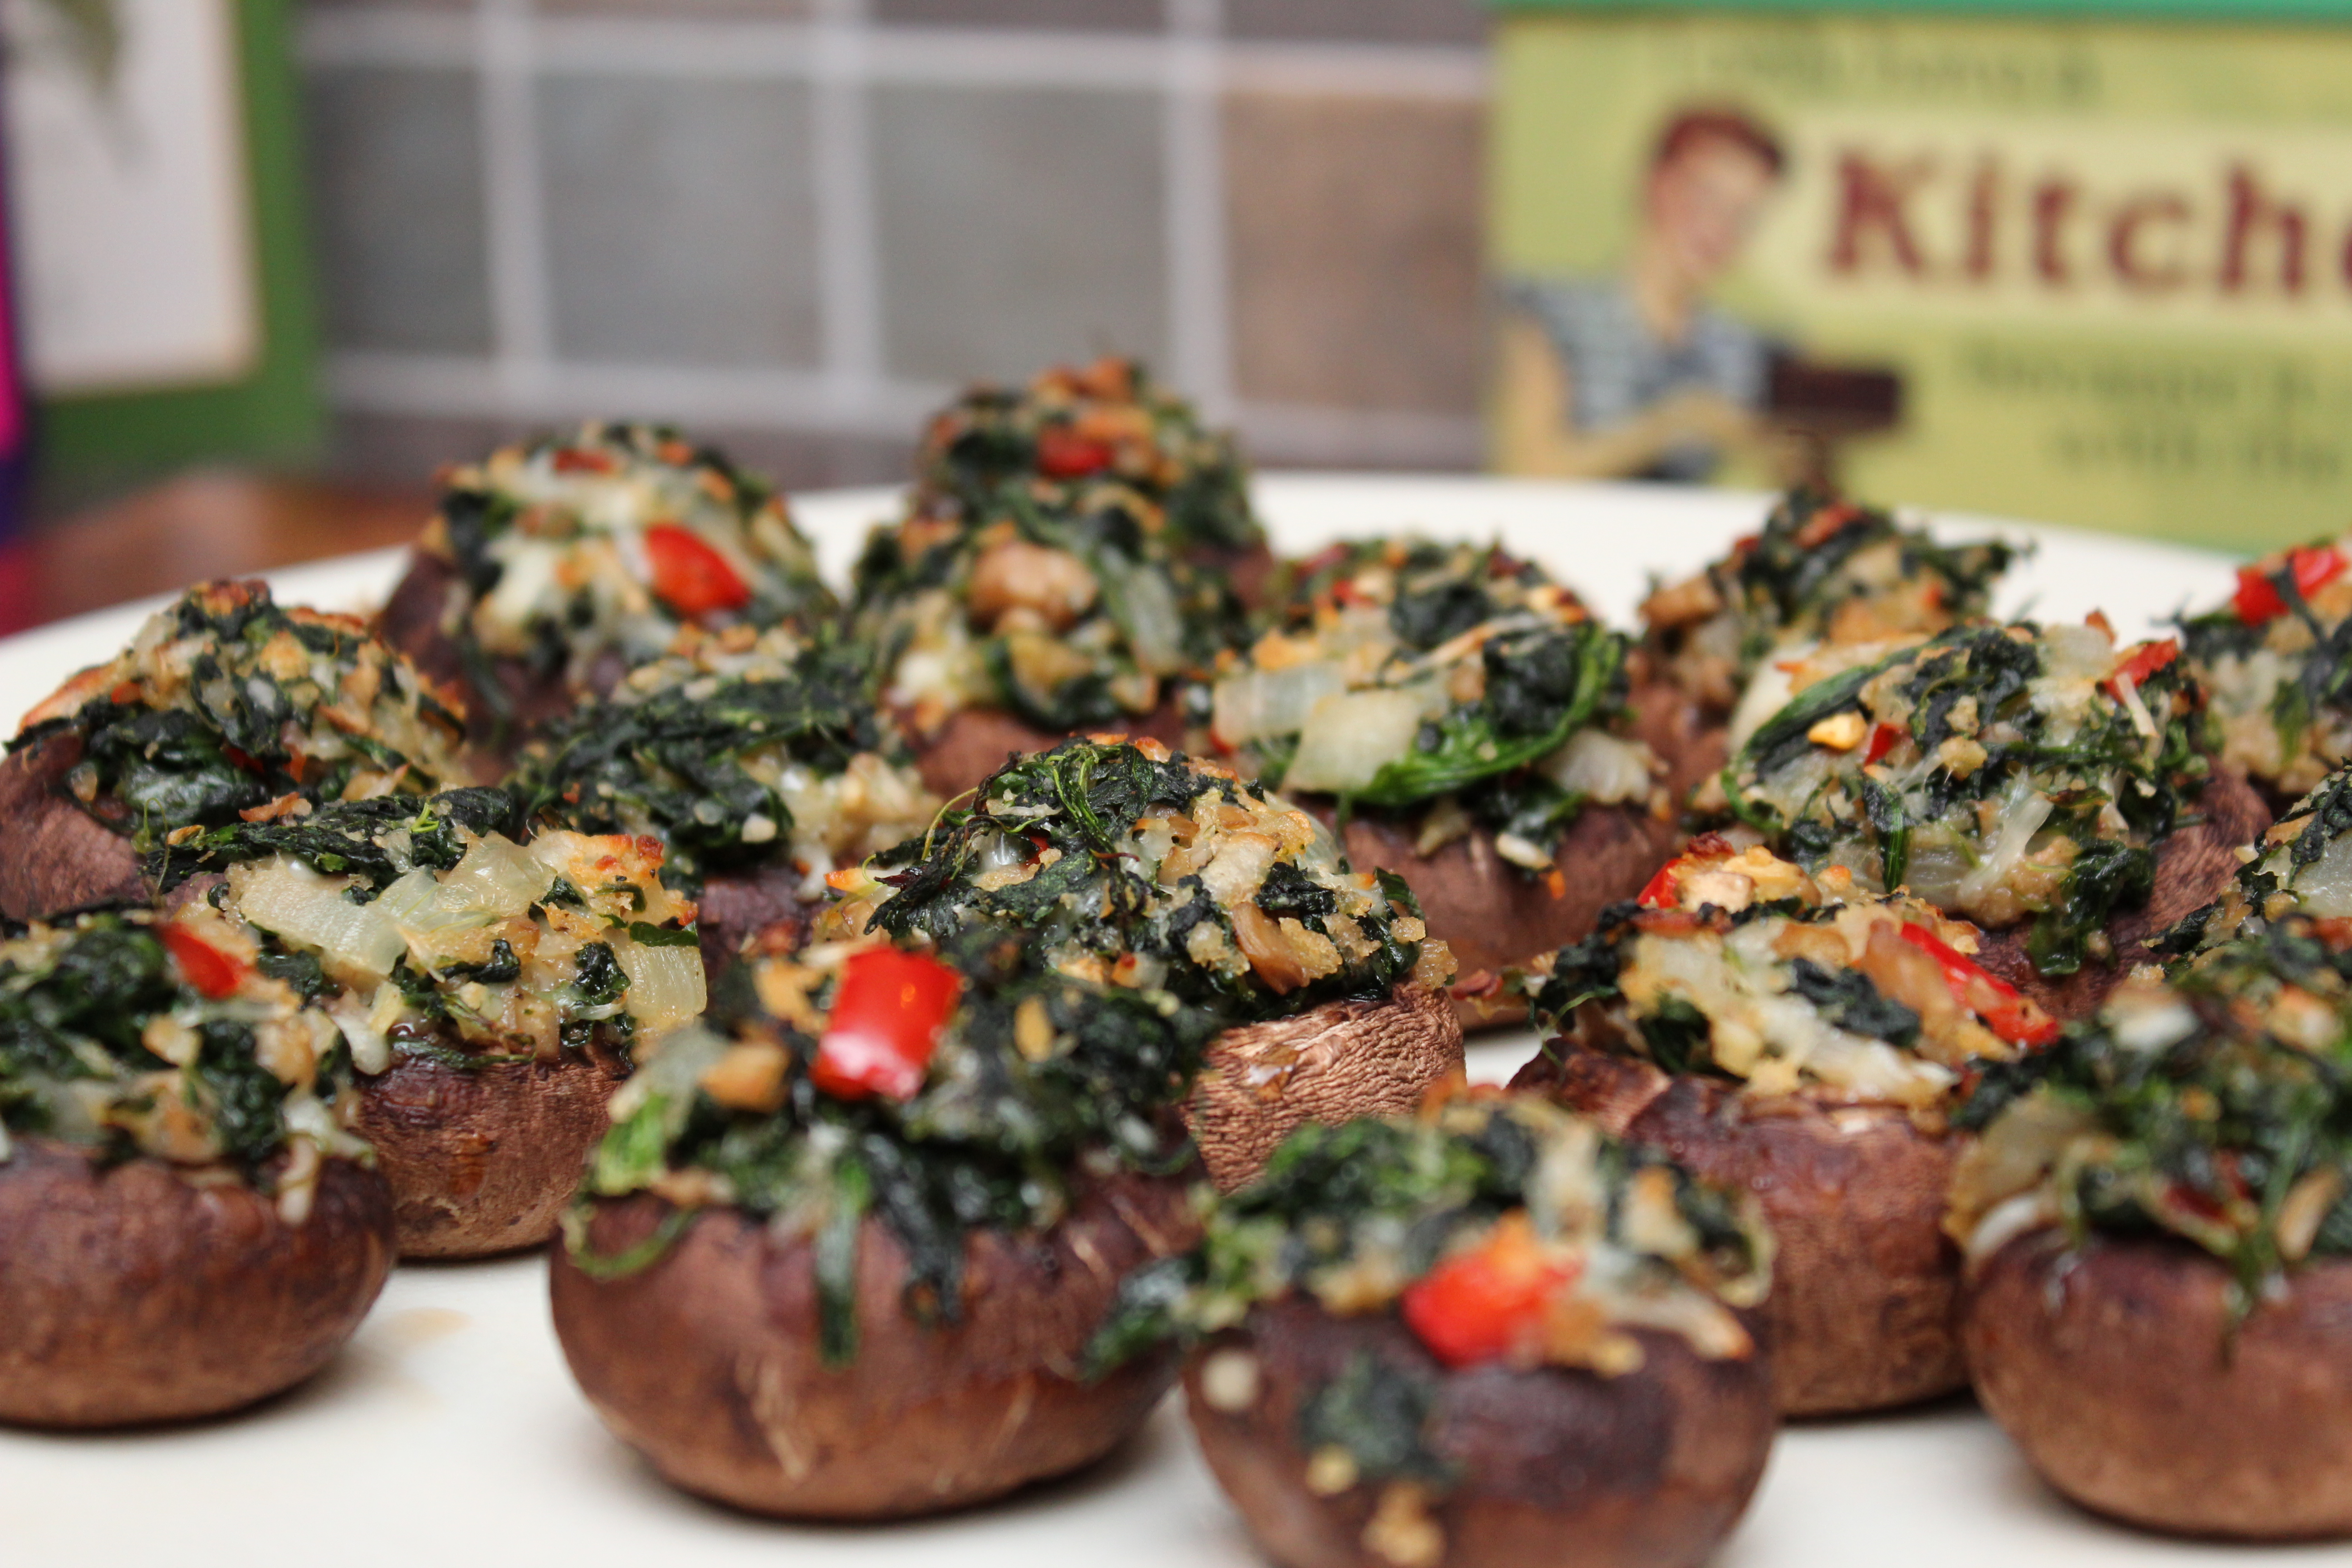 ... Sarah Sellers: Spinach Stuffed Mushrooms « Sarah's Musical Kitchen